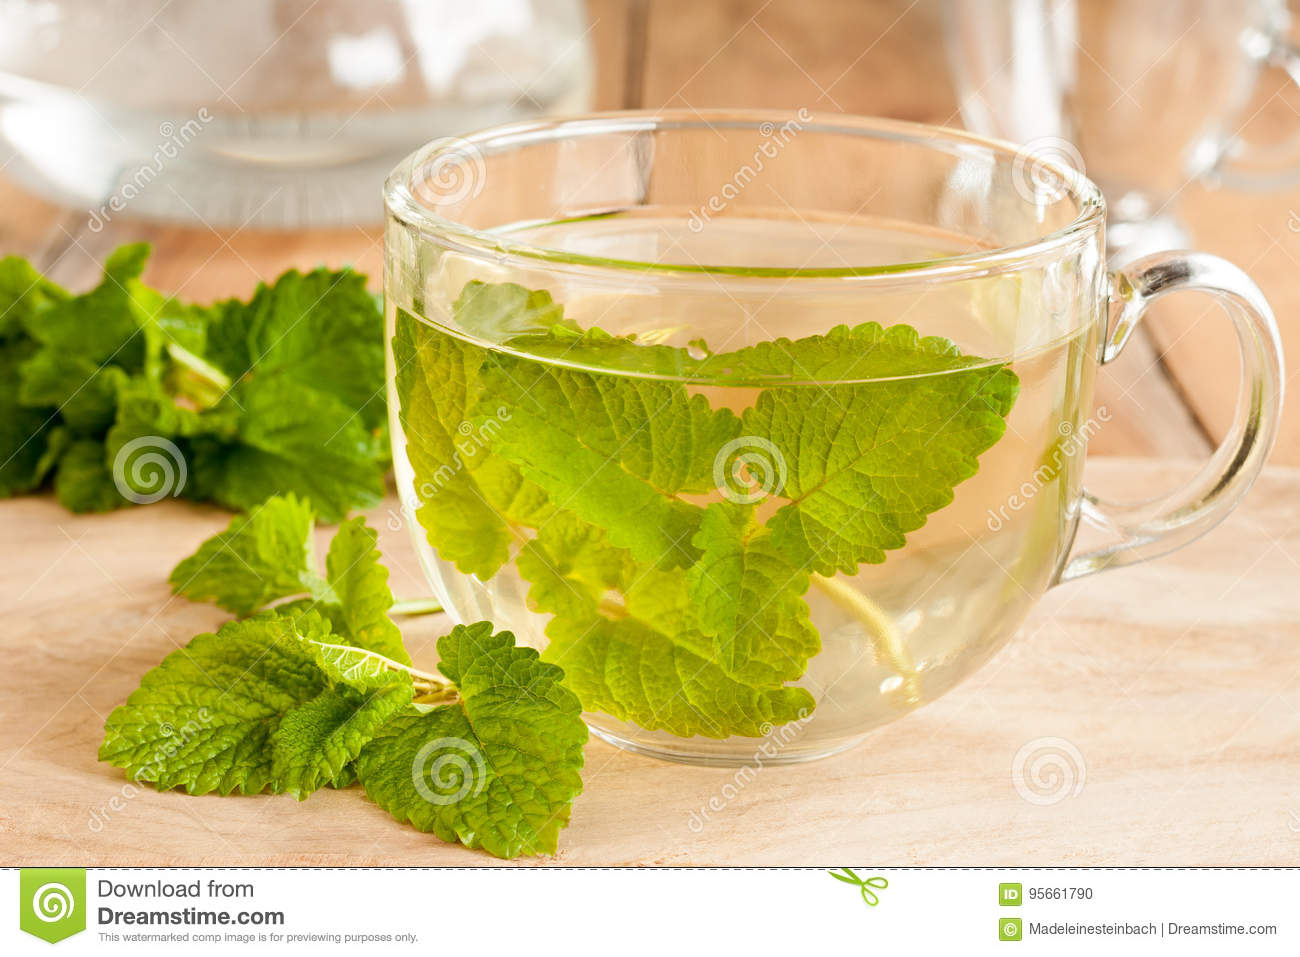 Is it possible to drink melissa tea during pregnancy 44